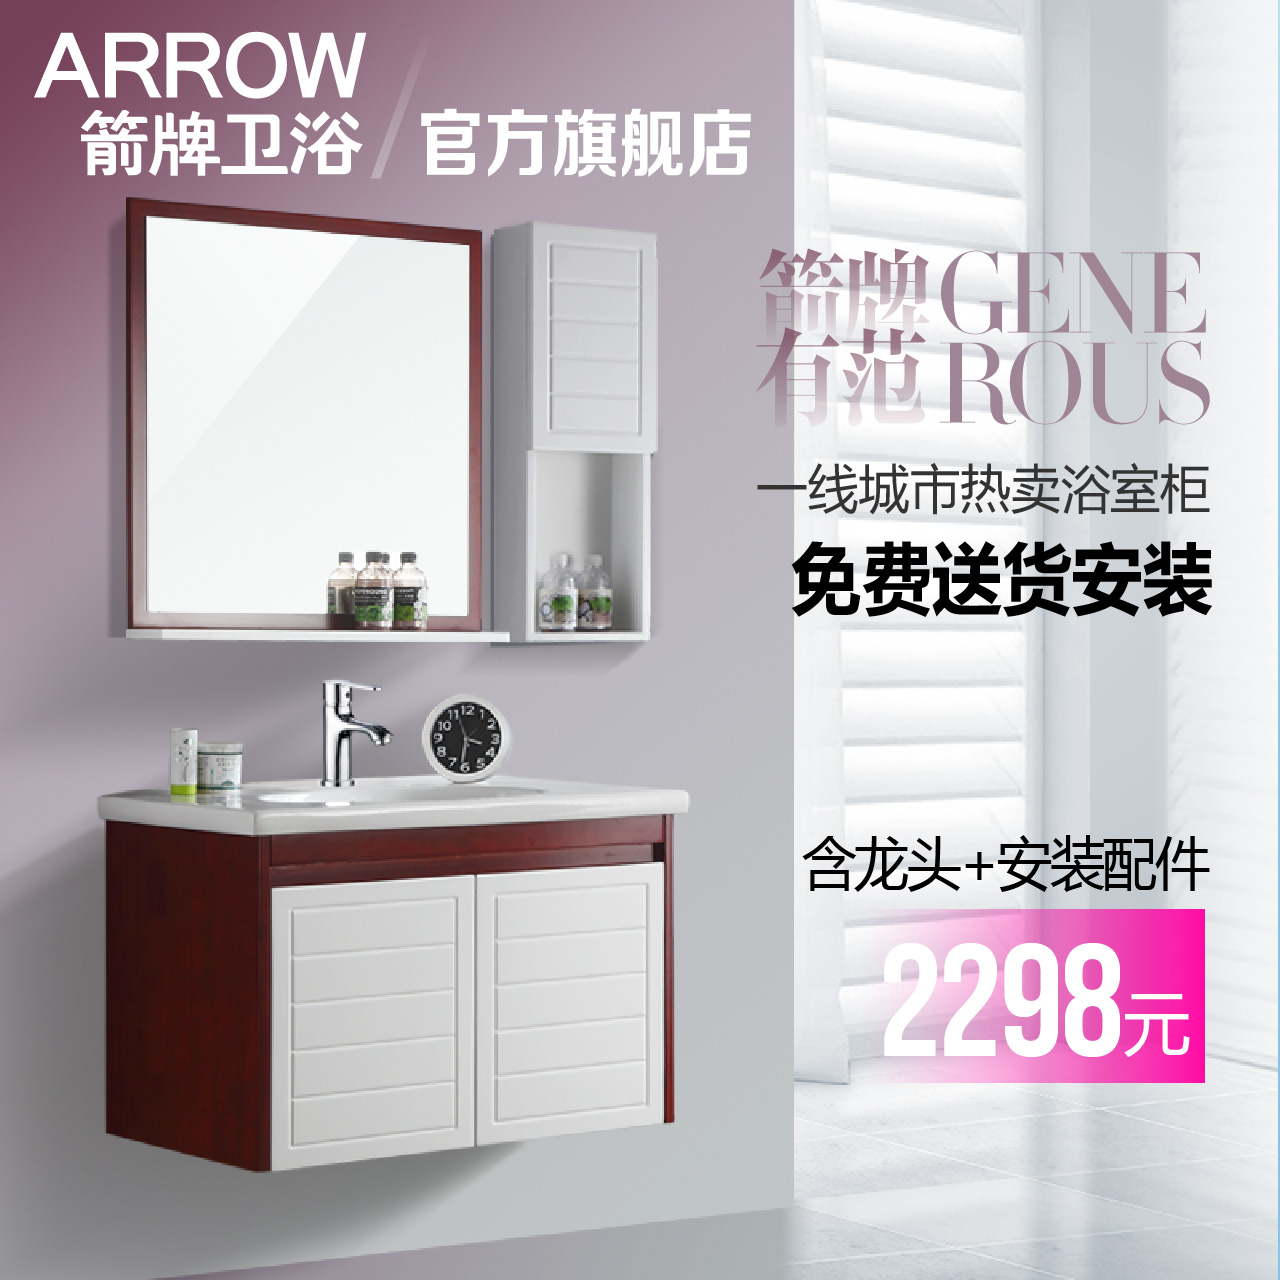 Wrigley bathroom cabinet combination bathroom cabinet wash hands wash basin cabinet modern minimalist wood wall mounted AE2202